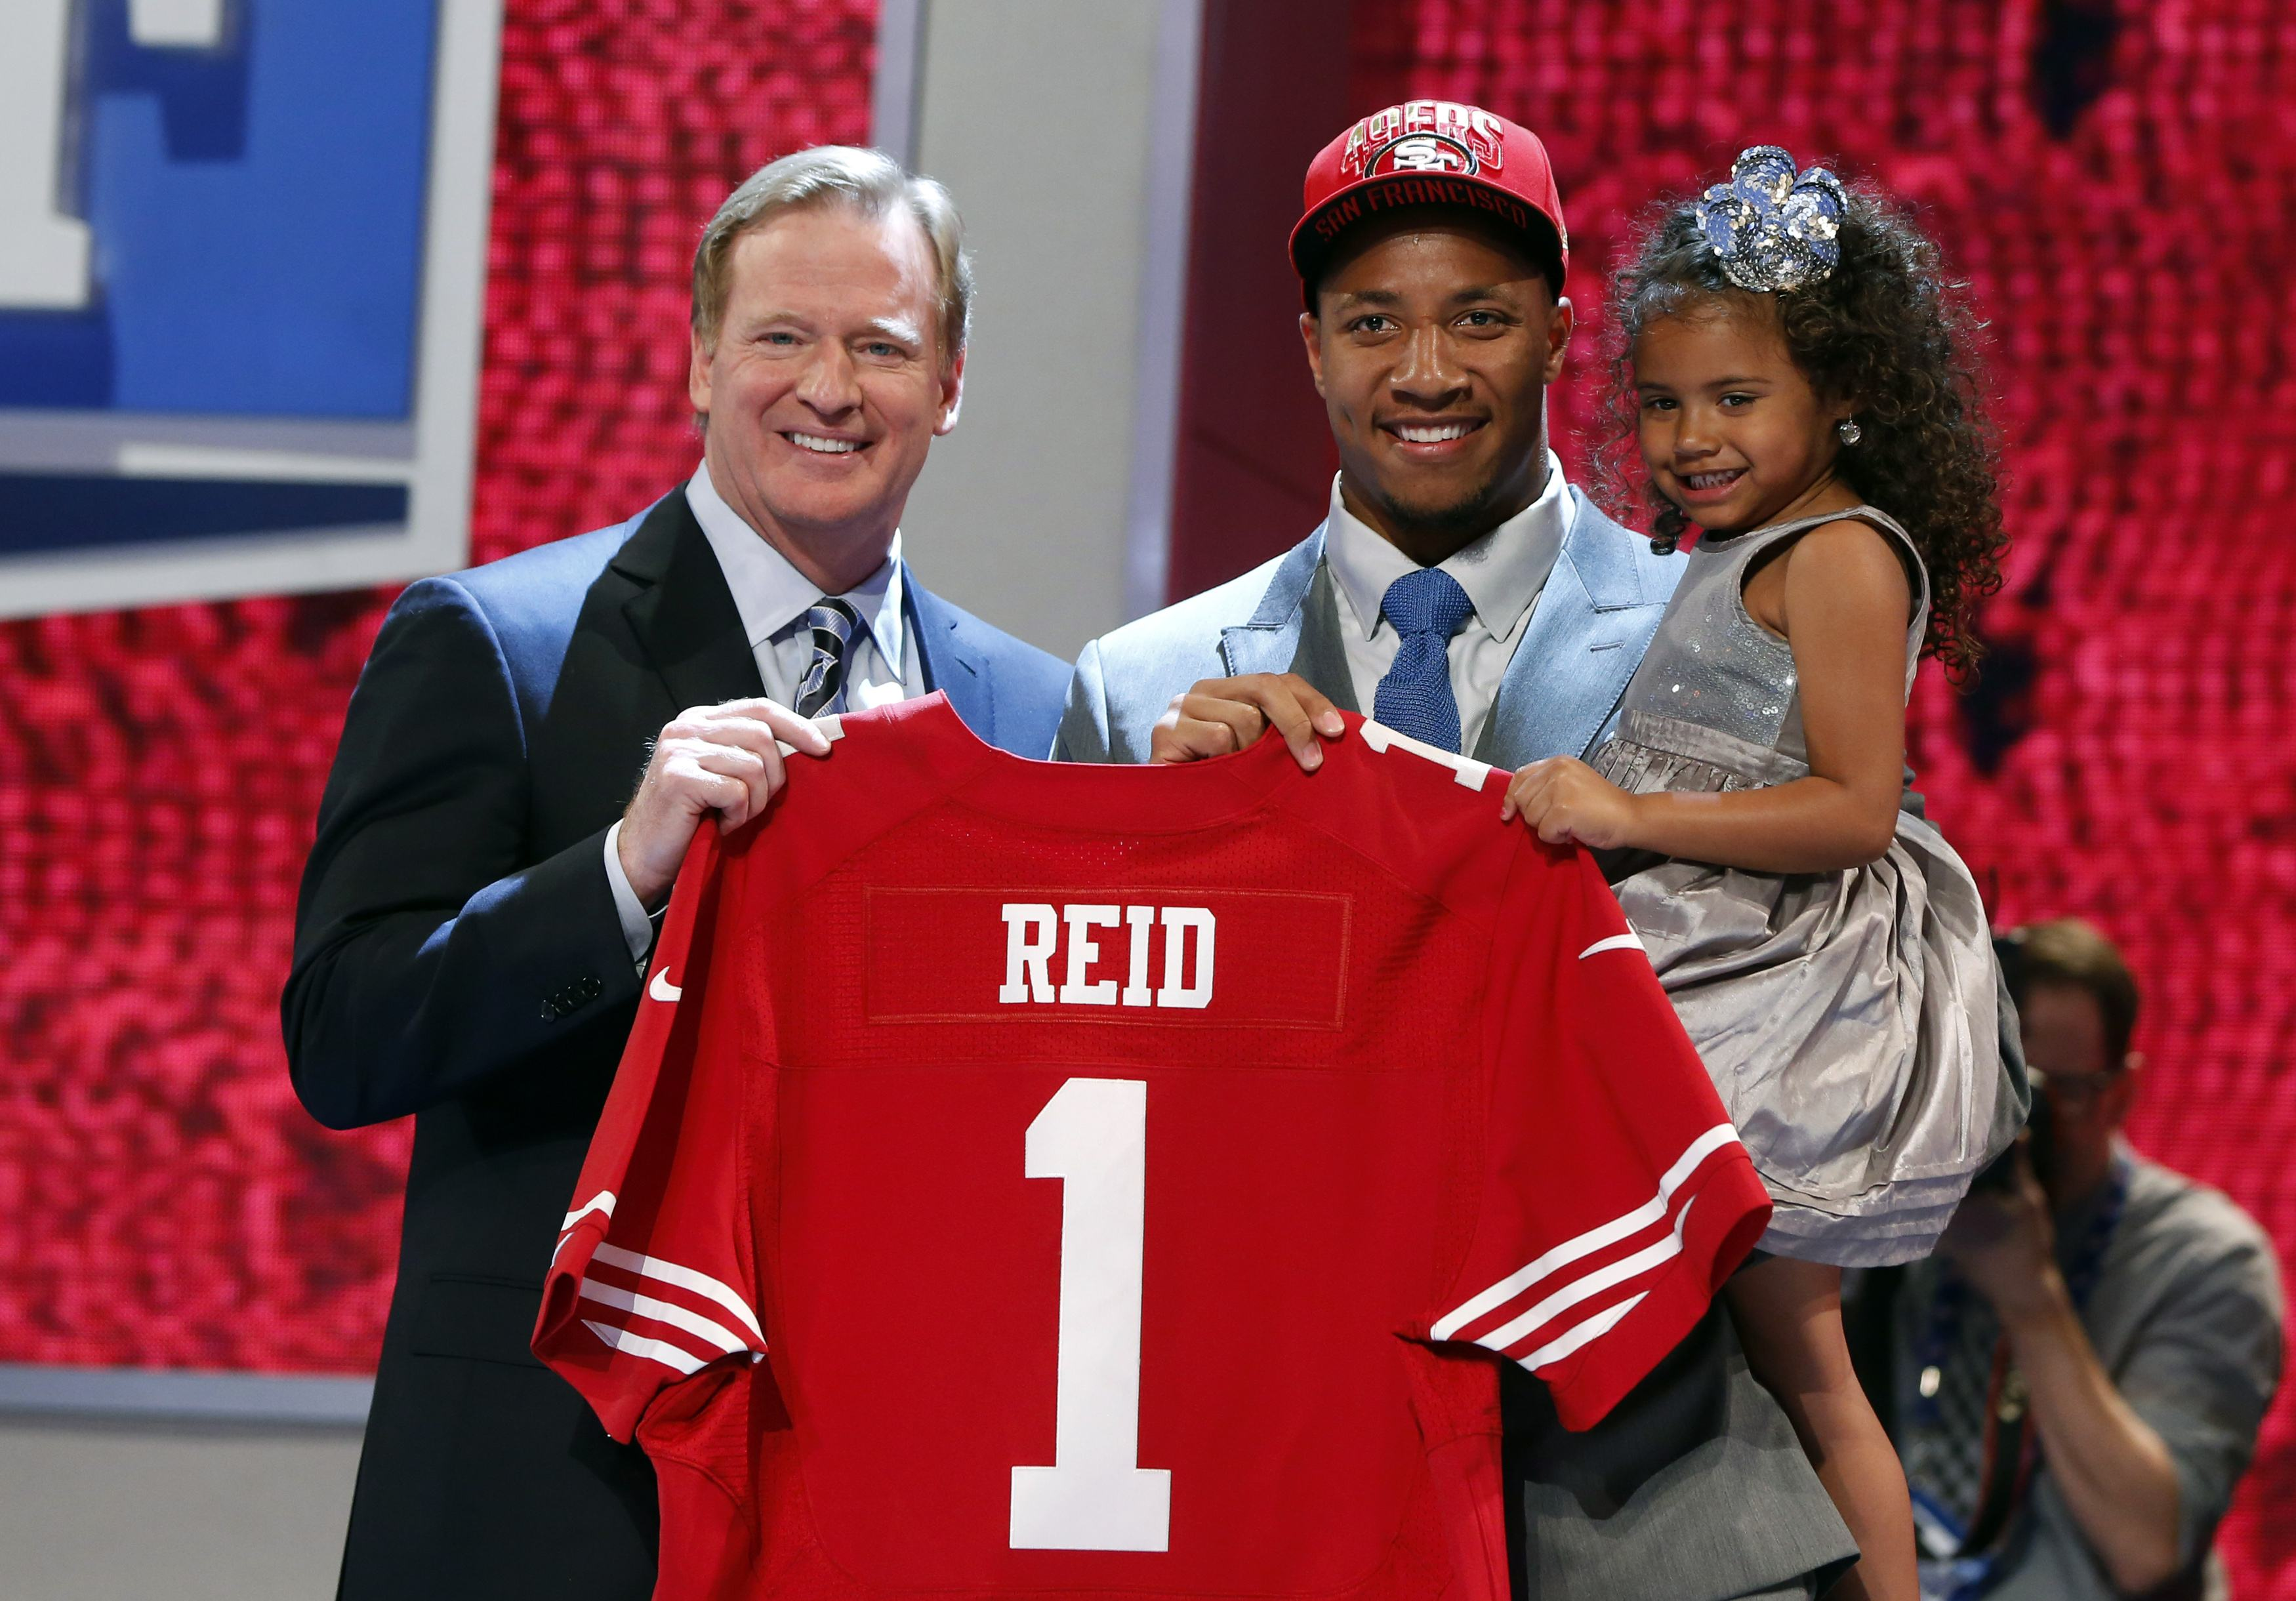 Eric Reid from Louisiana State Uni holds his daughter as he stands on stage with NFL Commissioner Roger Goodell after being selected by the San Francisco 49ers as the 18th overall pick in NFL Draft in New York